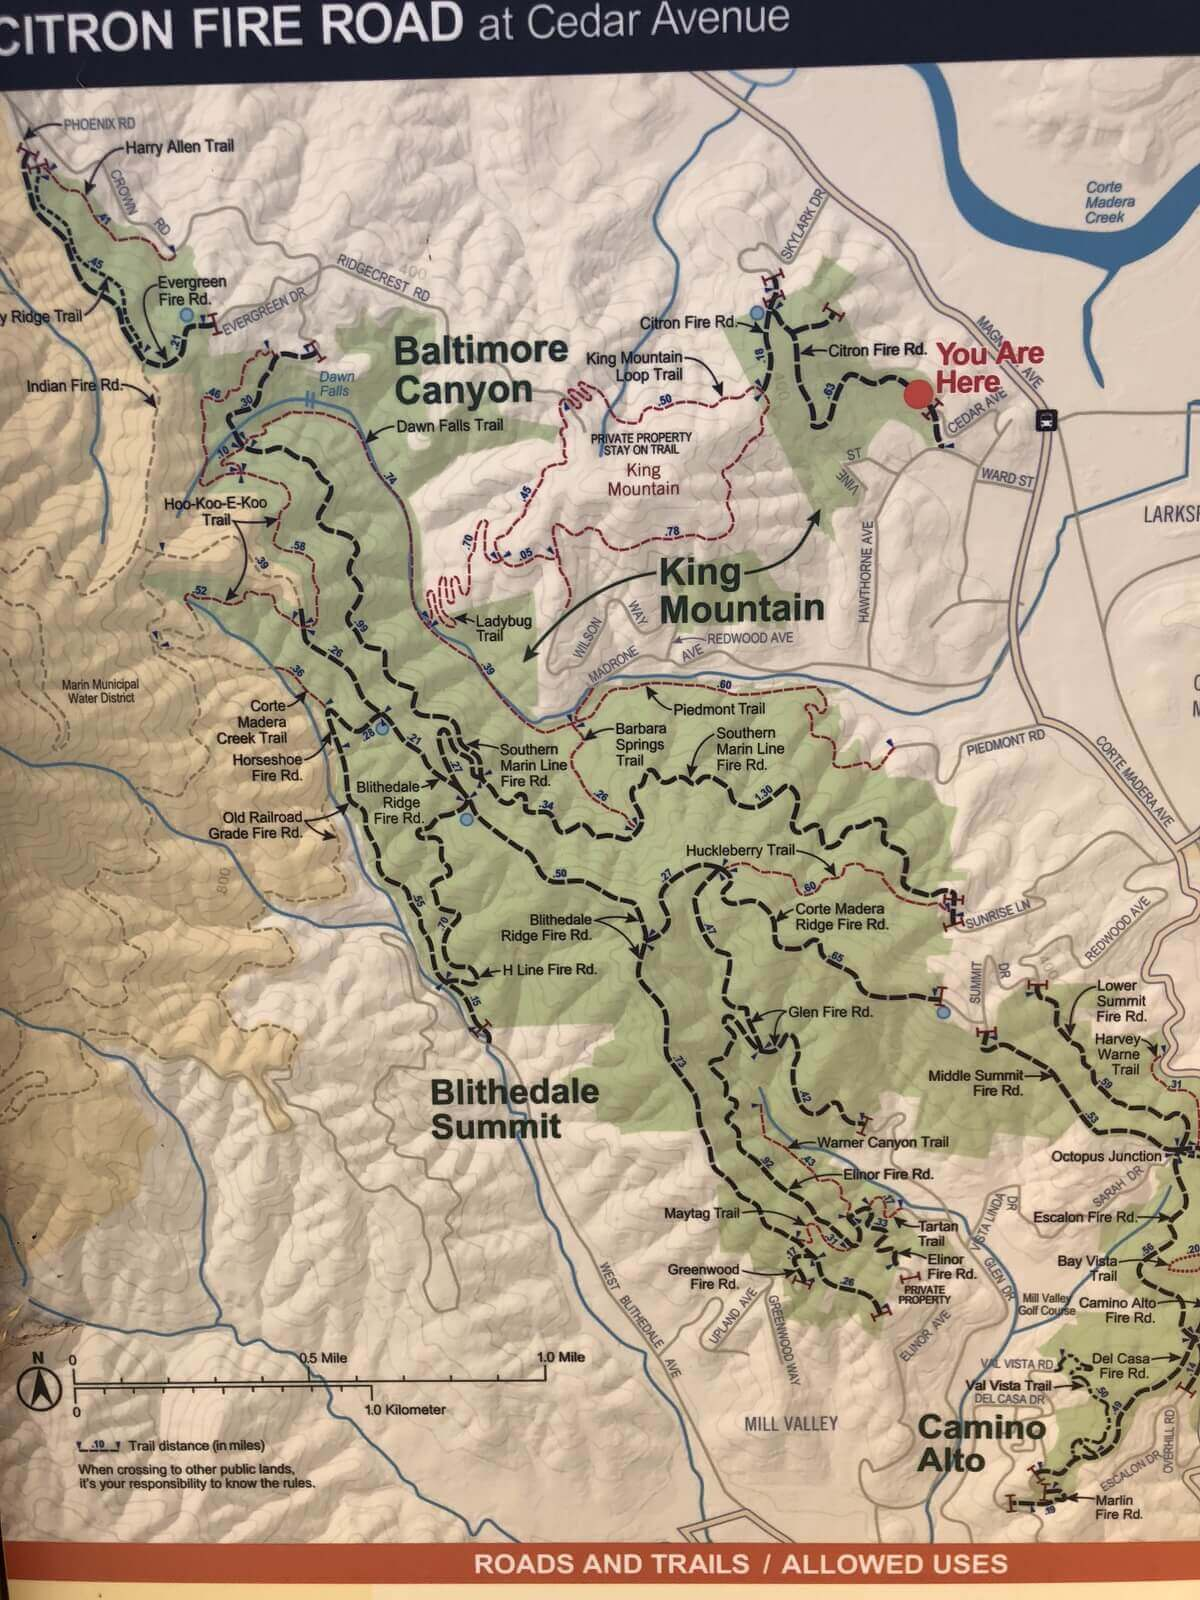 Map of Citron Fire Road and King Mountain